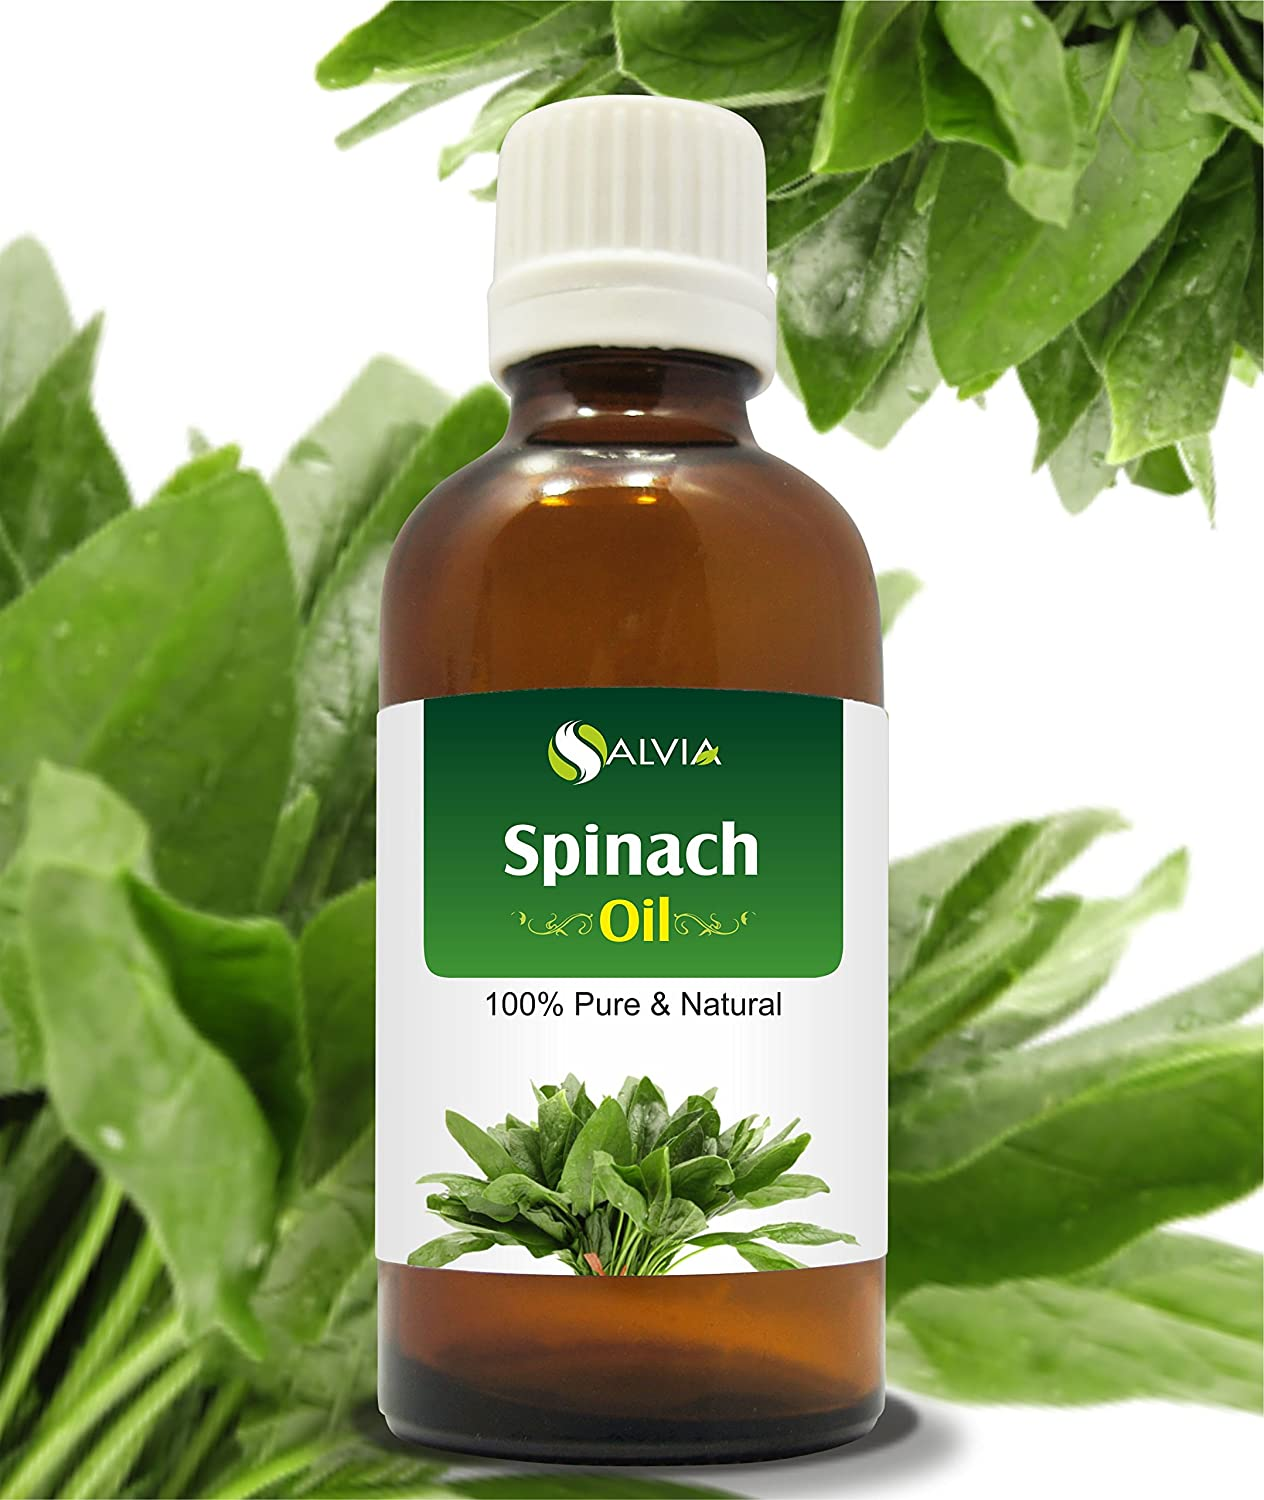 SPINACH OIL (SPINACIA OLERACEA) 100% NATURAL PURE CARRIER OIL 30ML Salvia